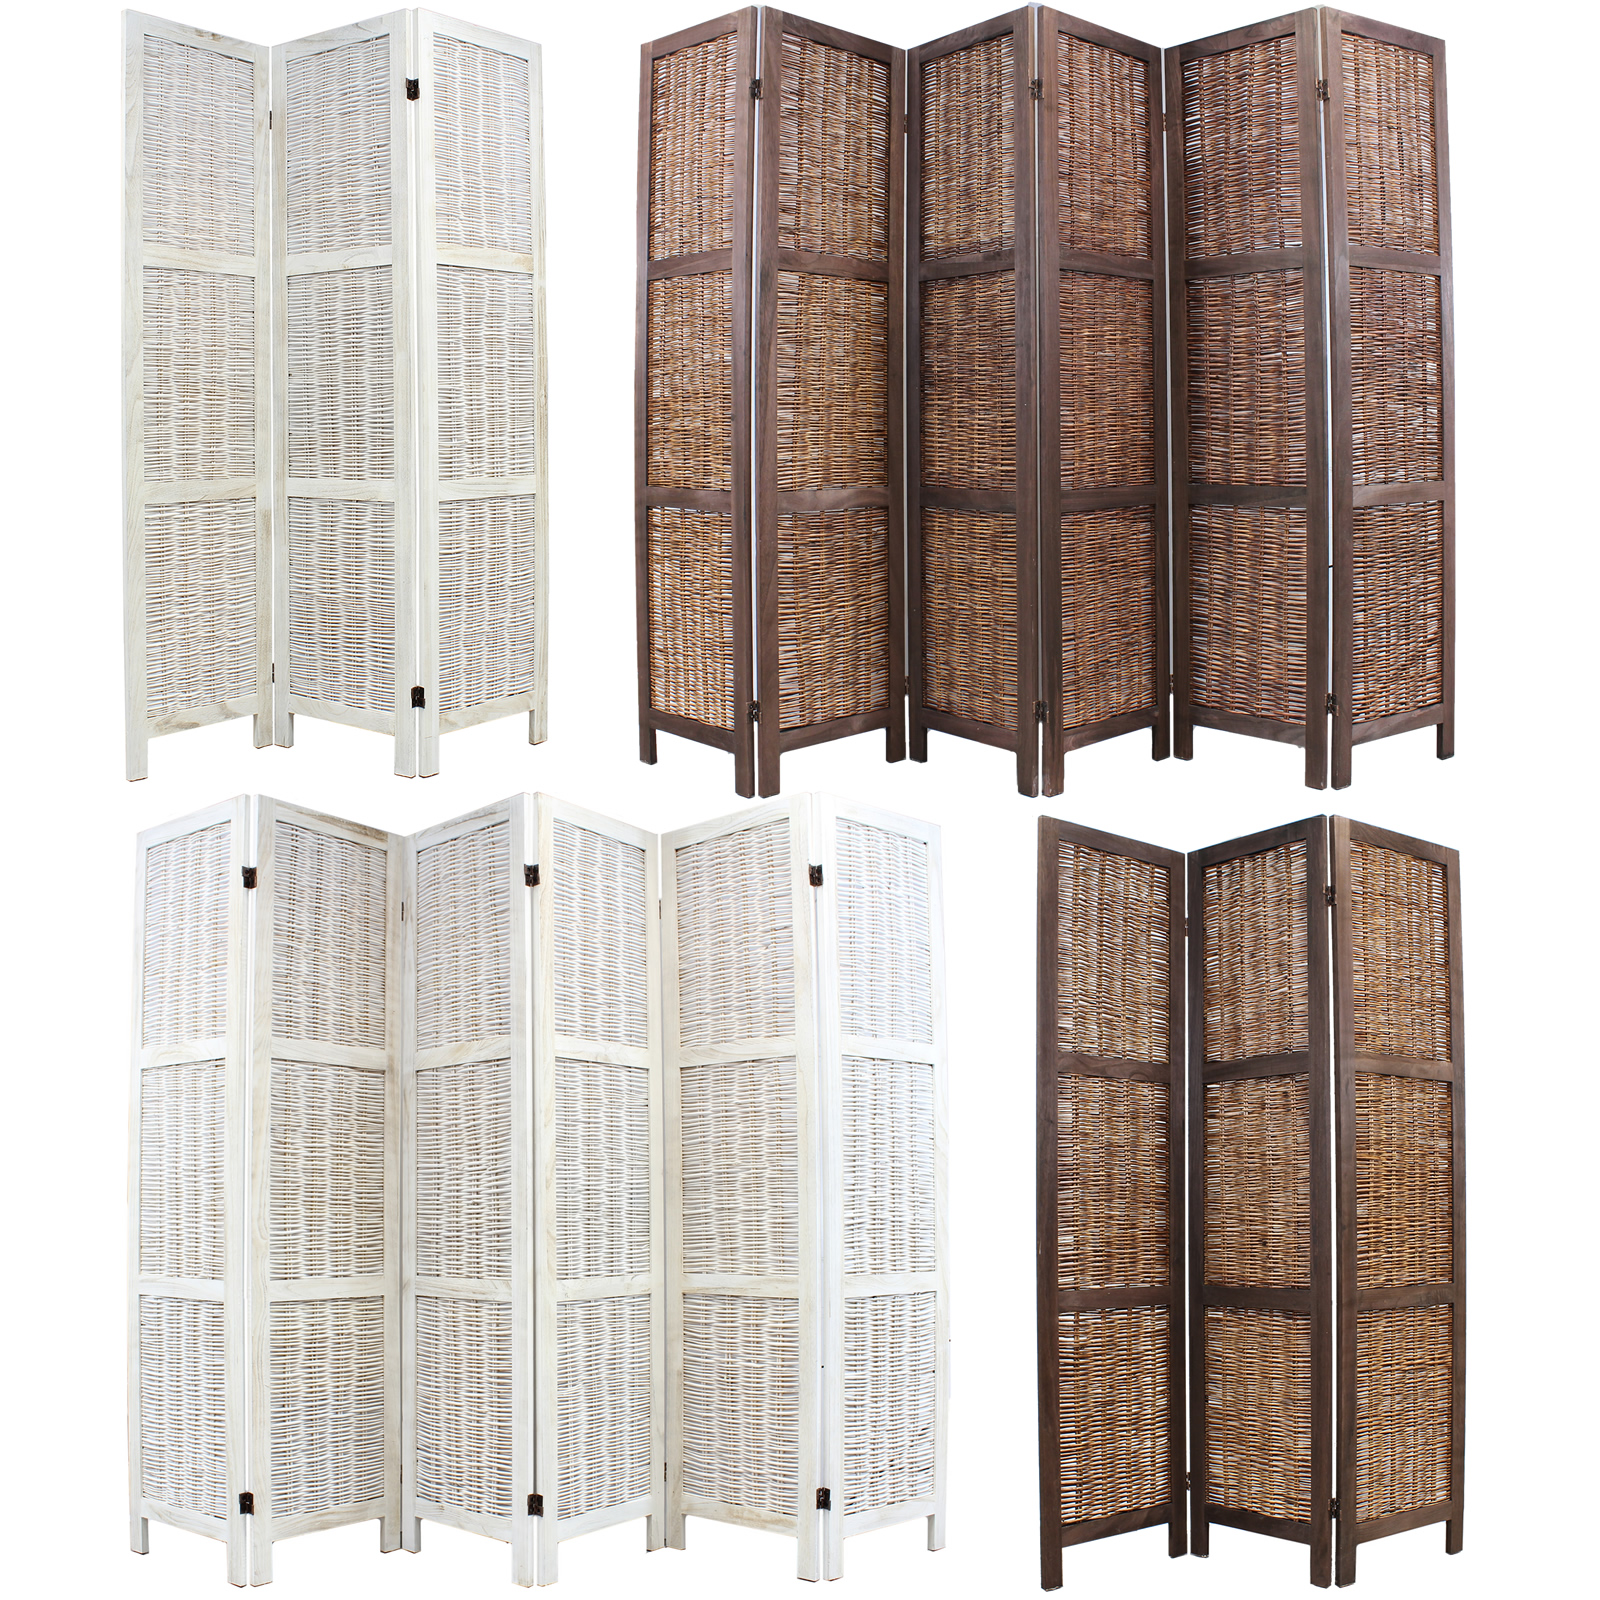 Wooden Framed Wicker Room Divider Privacy Screen Partition